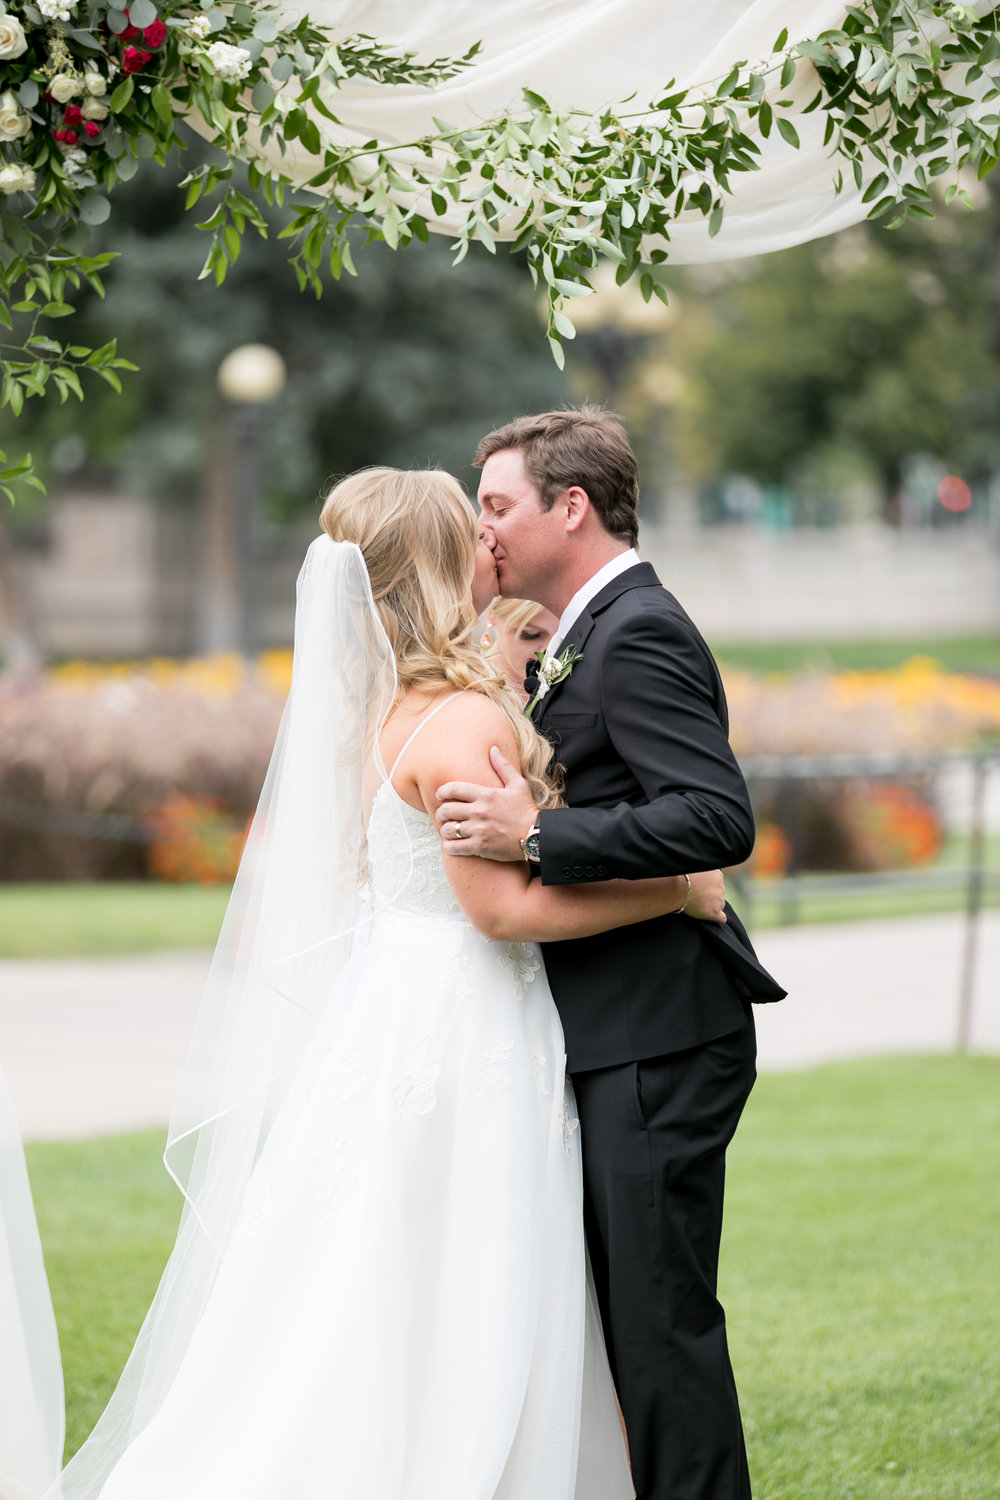 city-chic-downtown-denver-park-wedding60.jpg